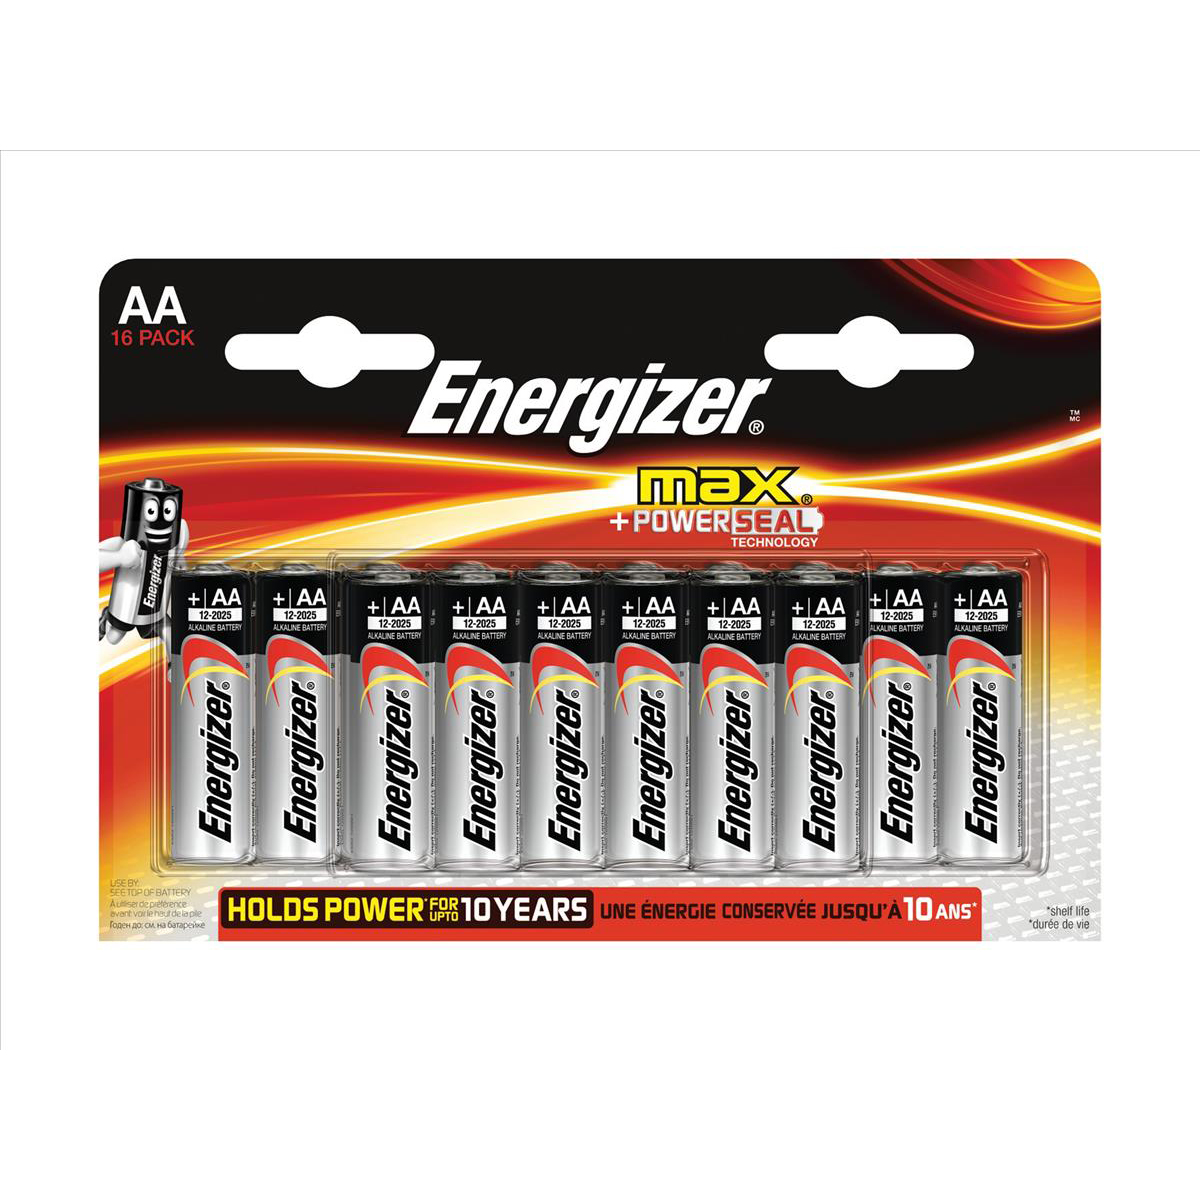 AA Energizer Max AA/E91 Batteries Ref E300132000 Pack 16